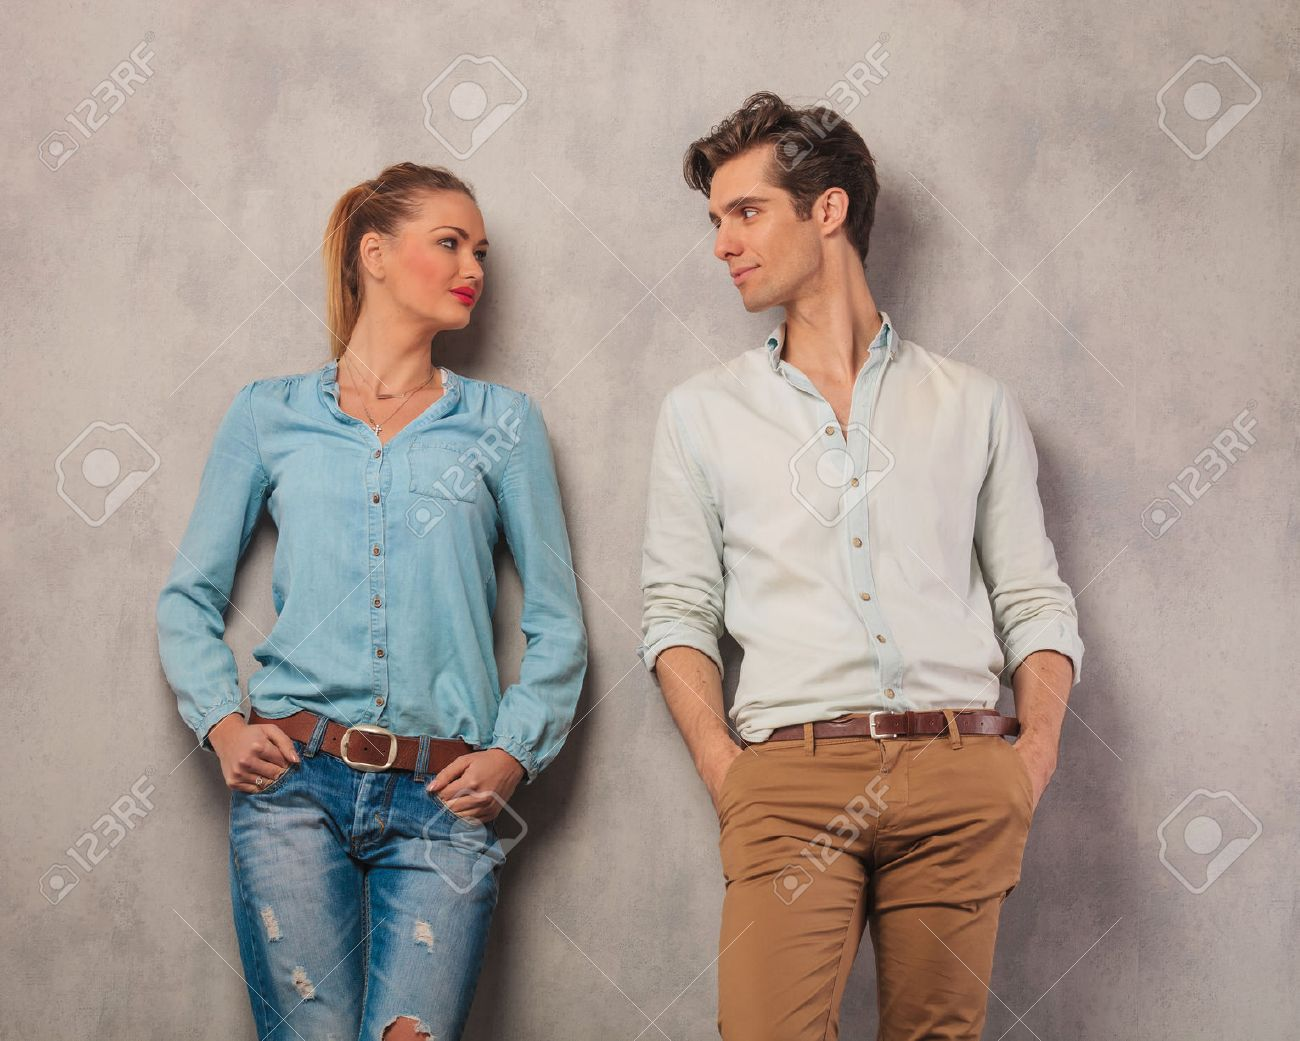 young couple looking at each other with hands in pockets in studio background - 51507838